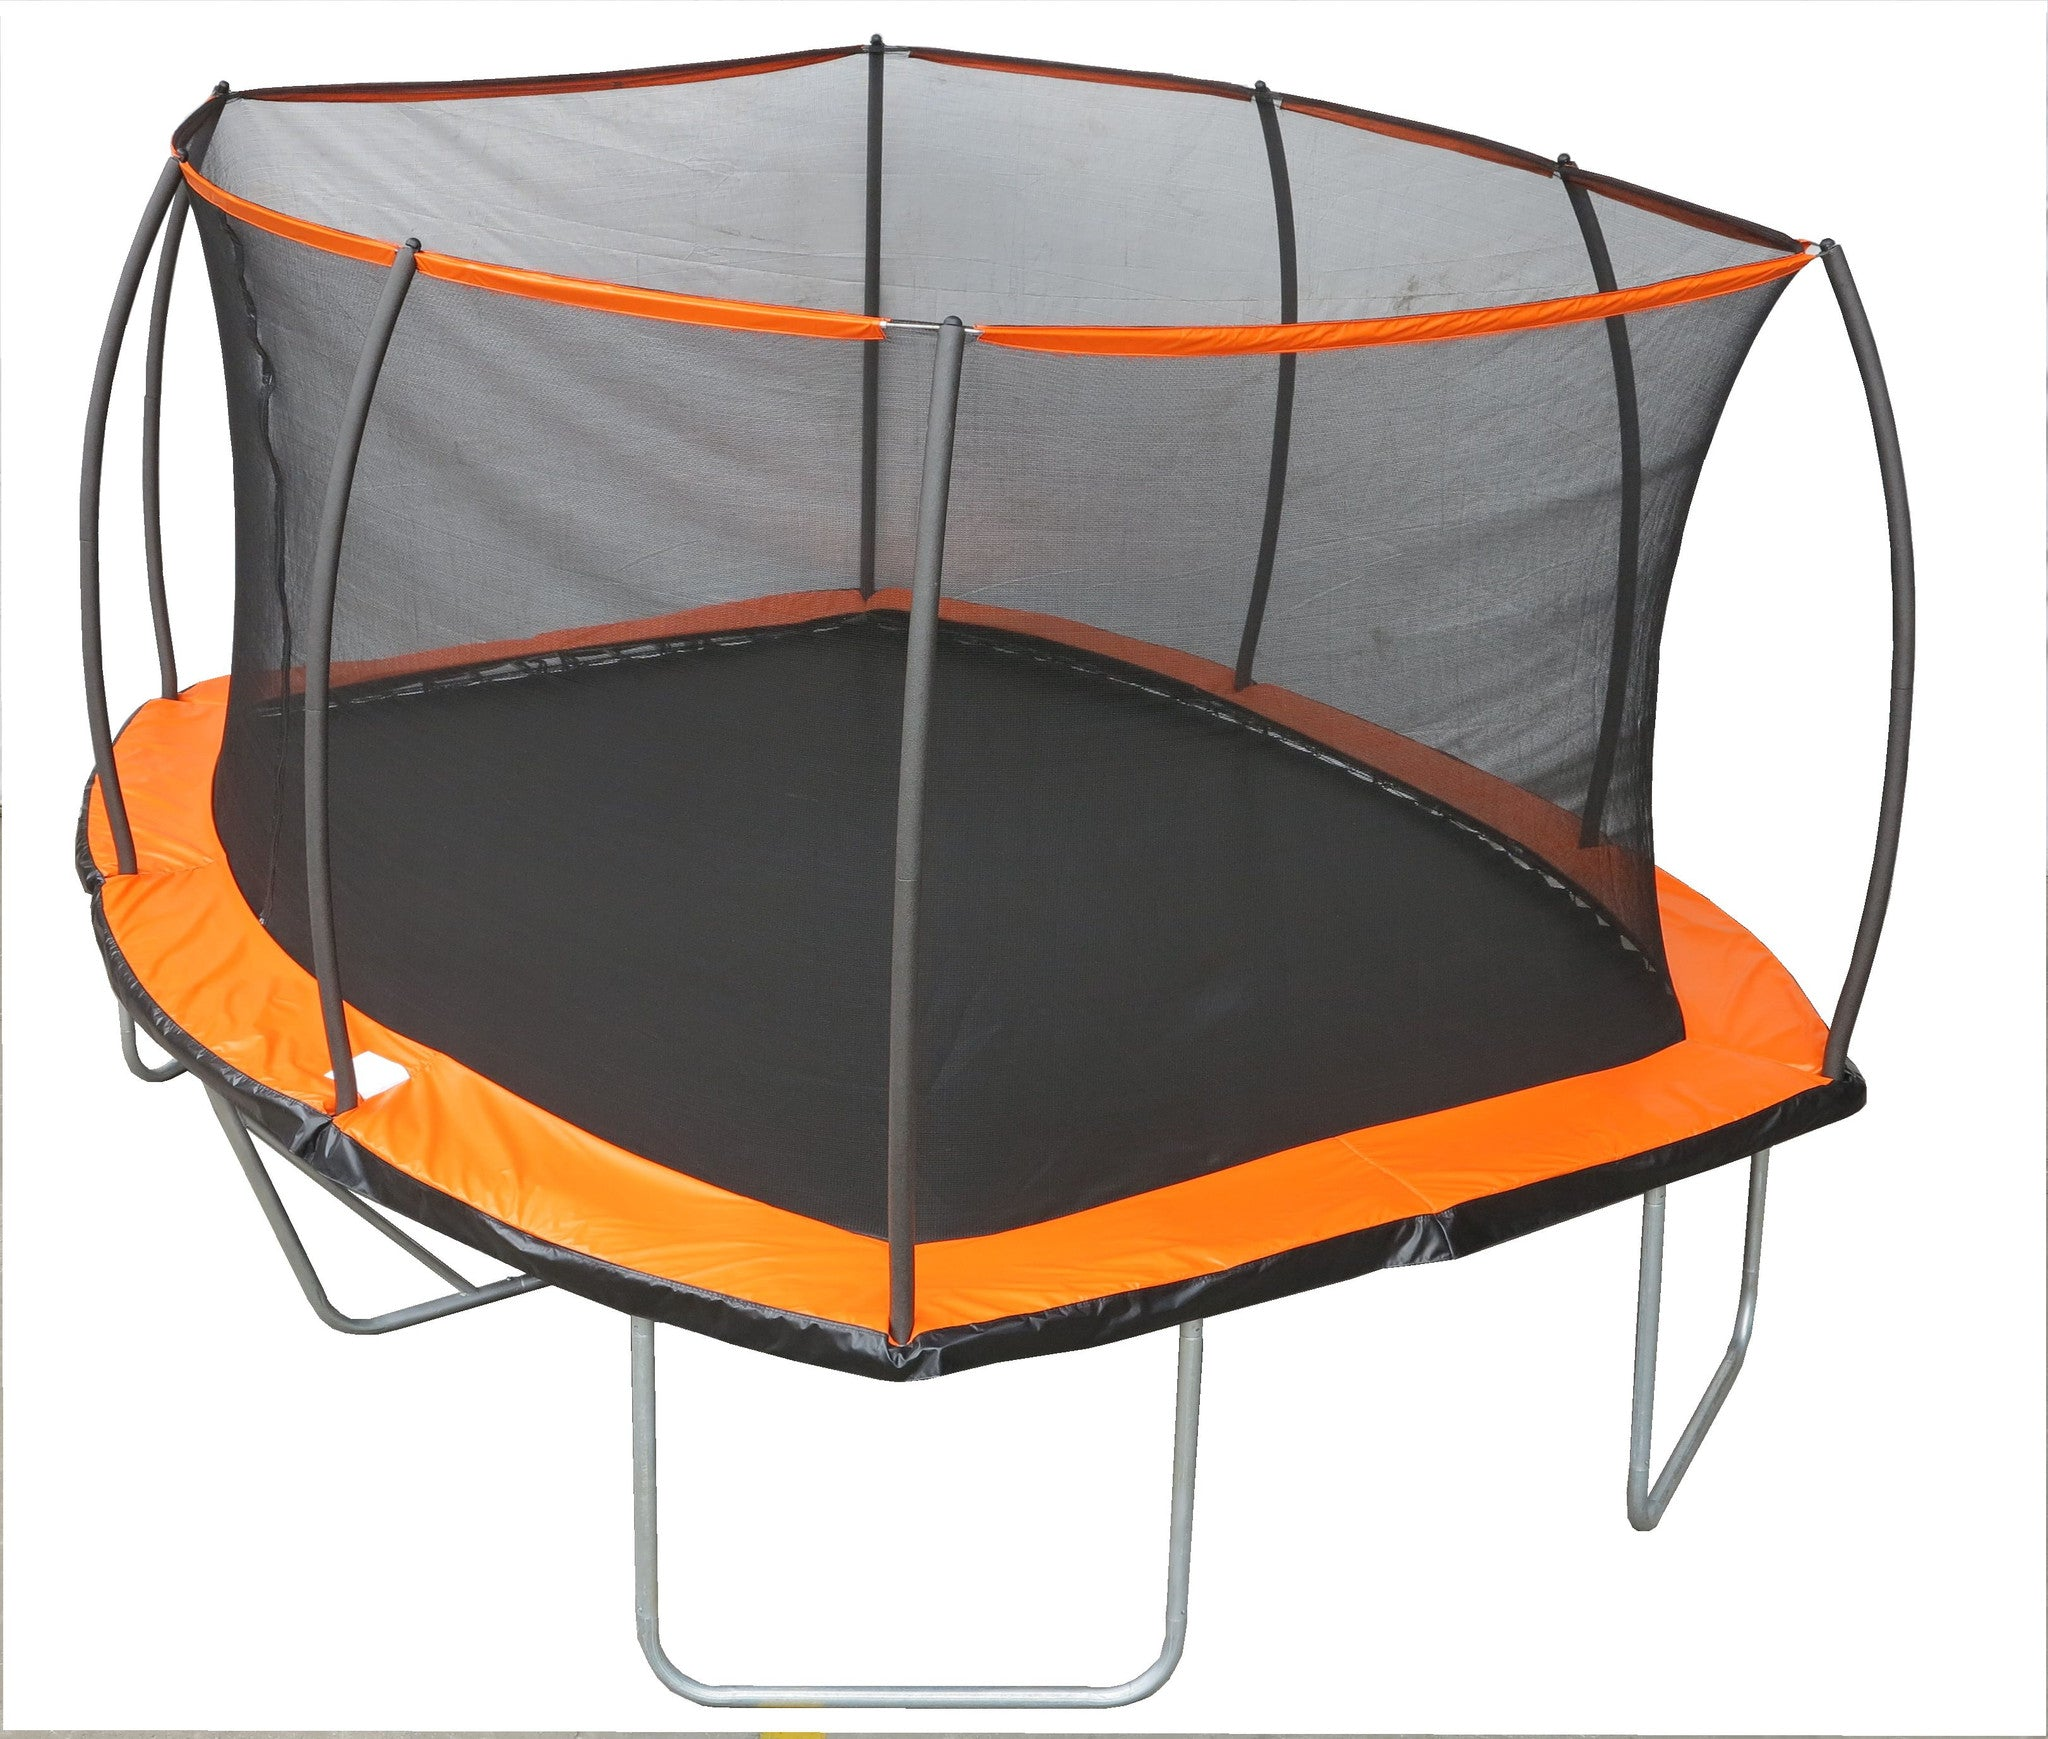 15ft. x 10ft. Rectangular Trampoline & Patented Safety Net Combo